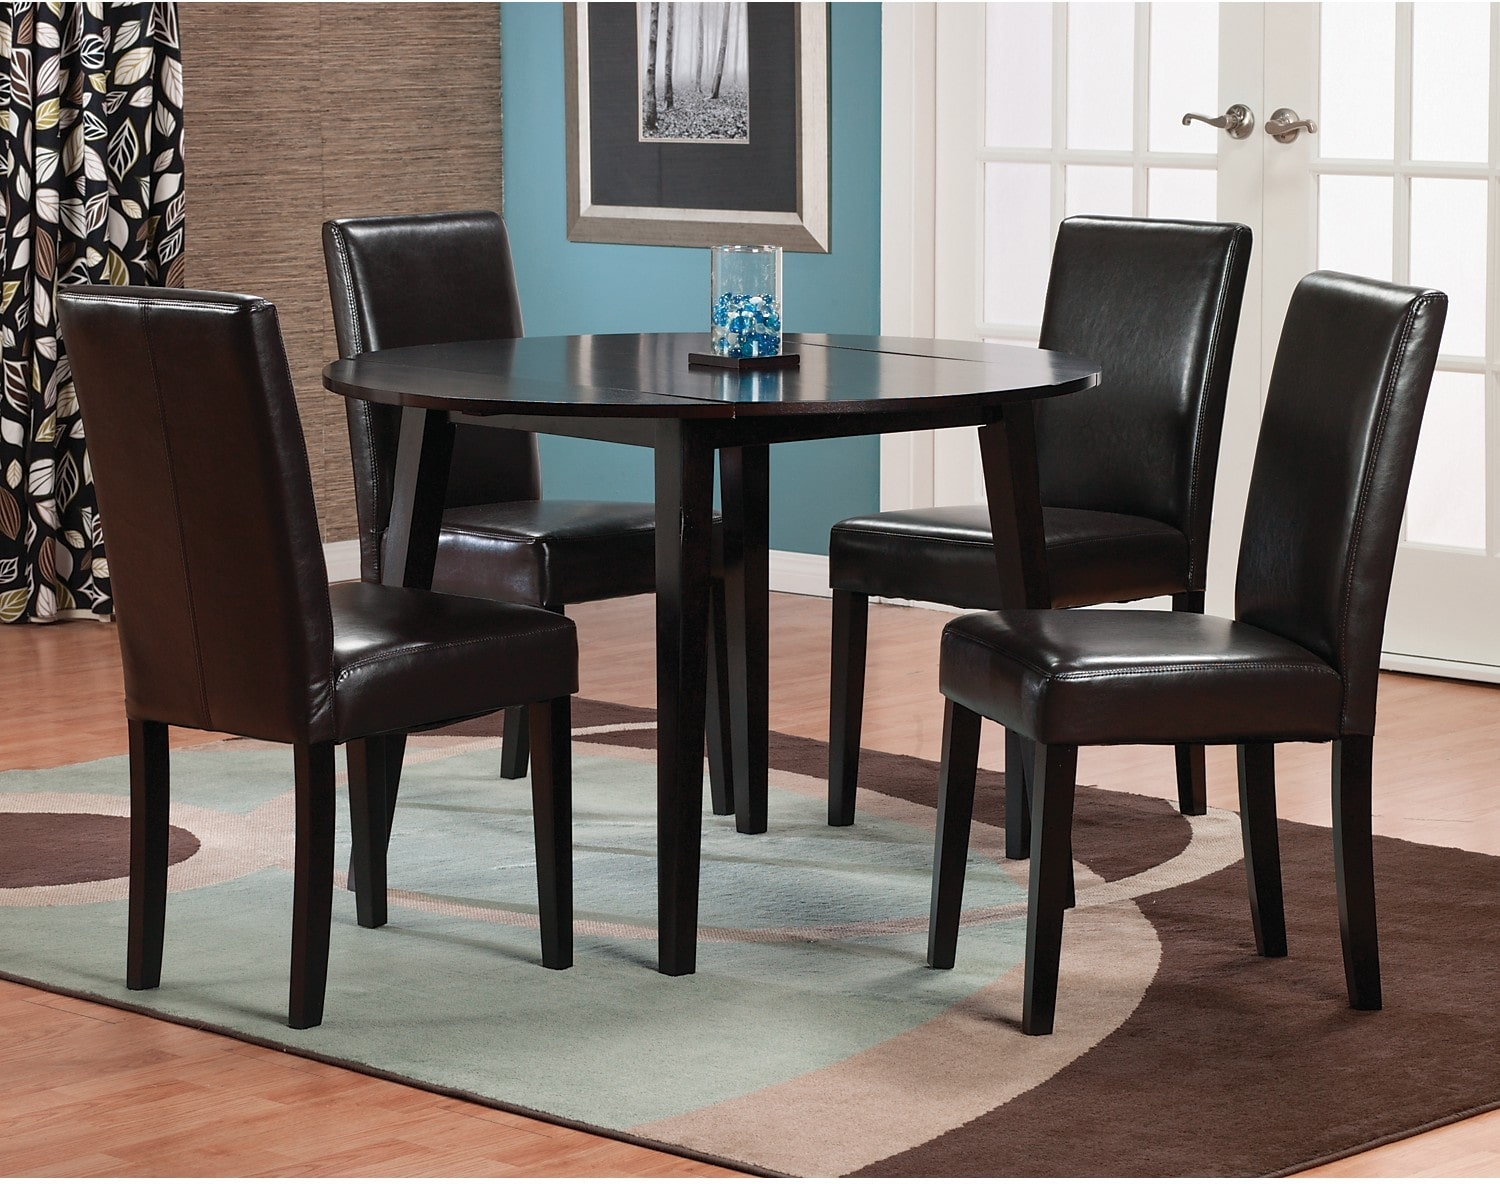 Dining Room Furniture - Dakota 5-Piece Round Table Dining Package with Brown Chairs